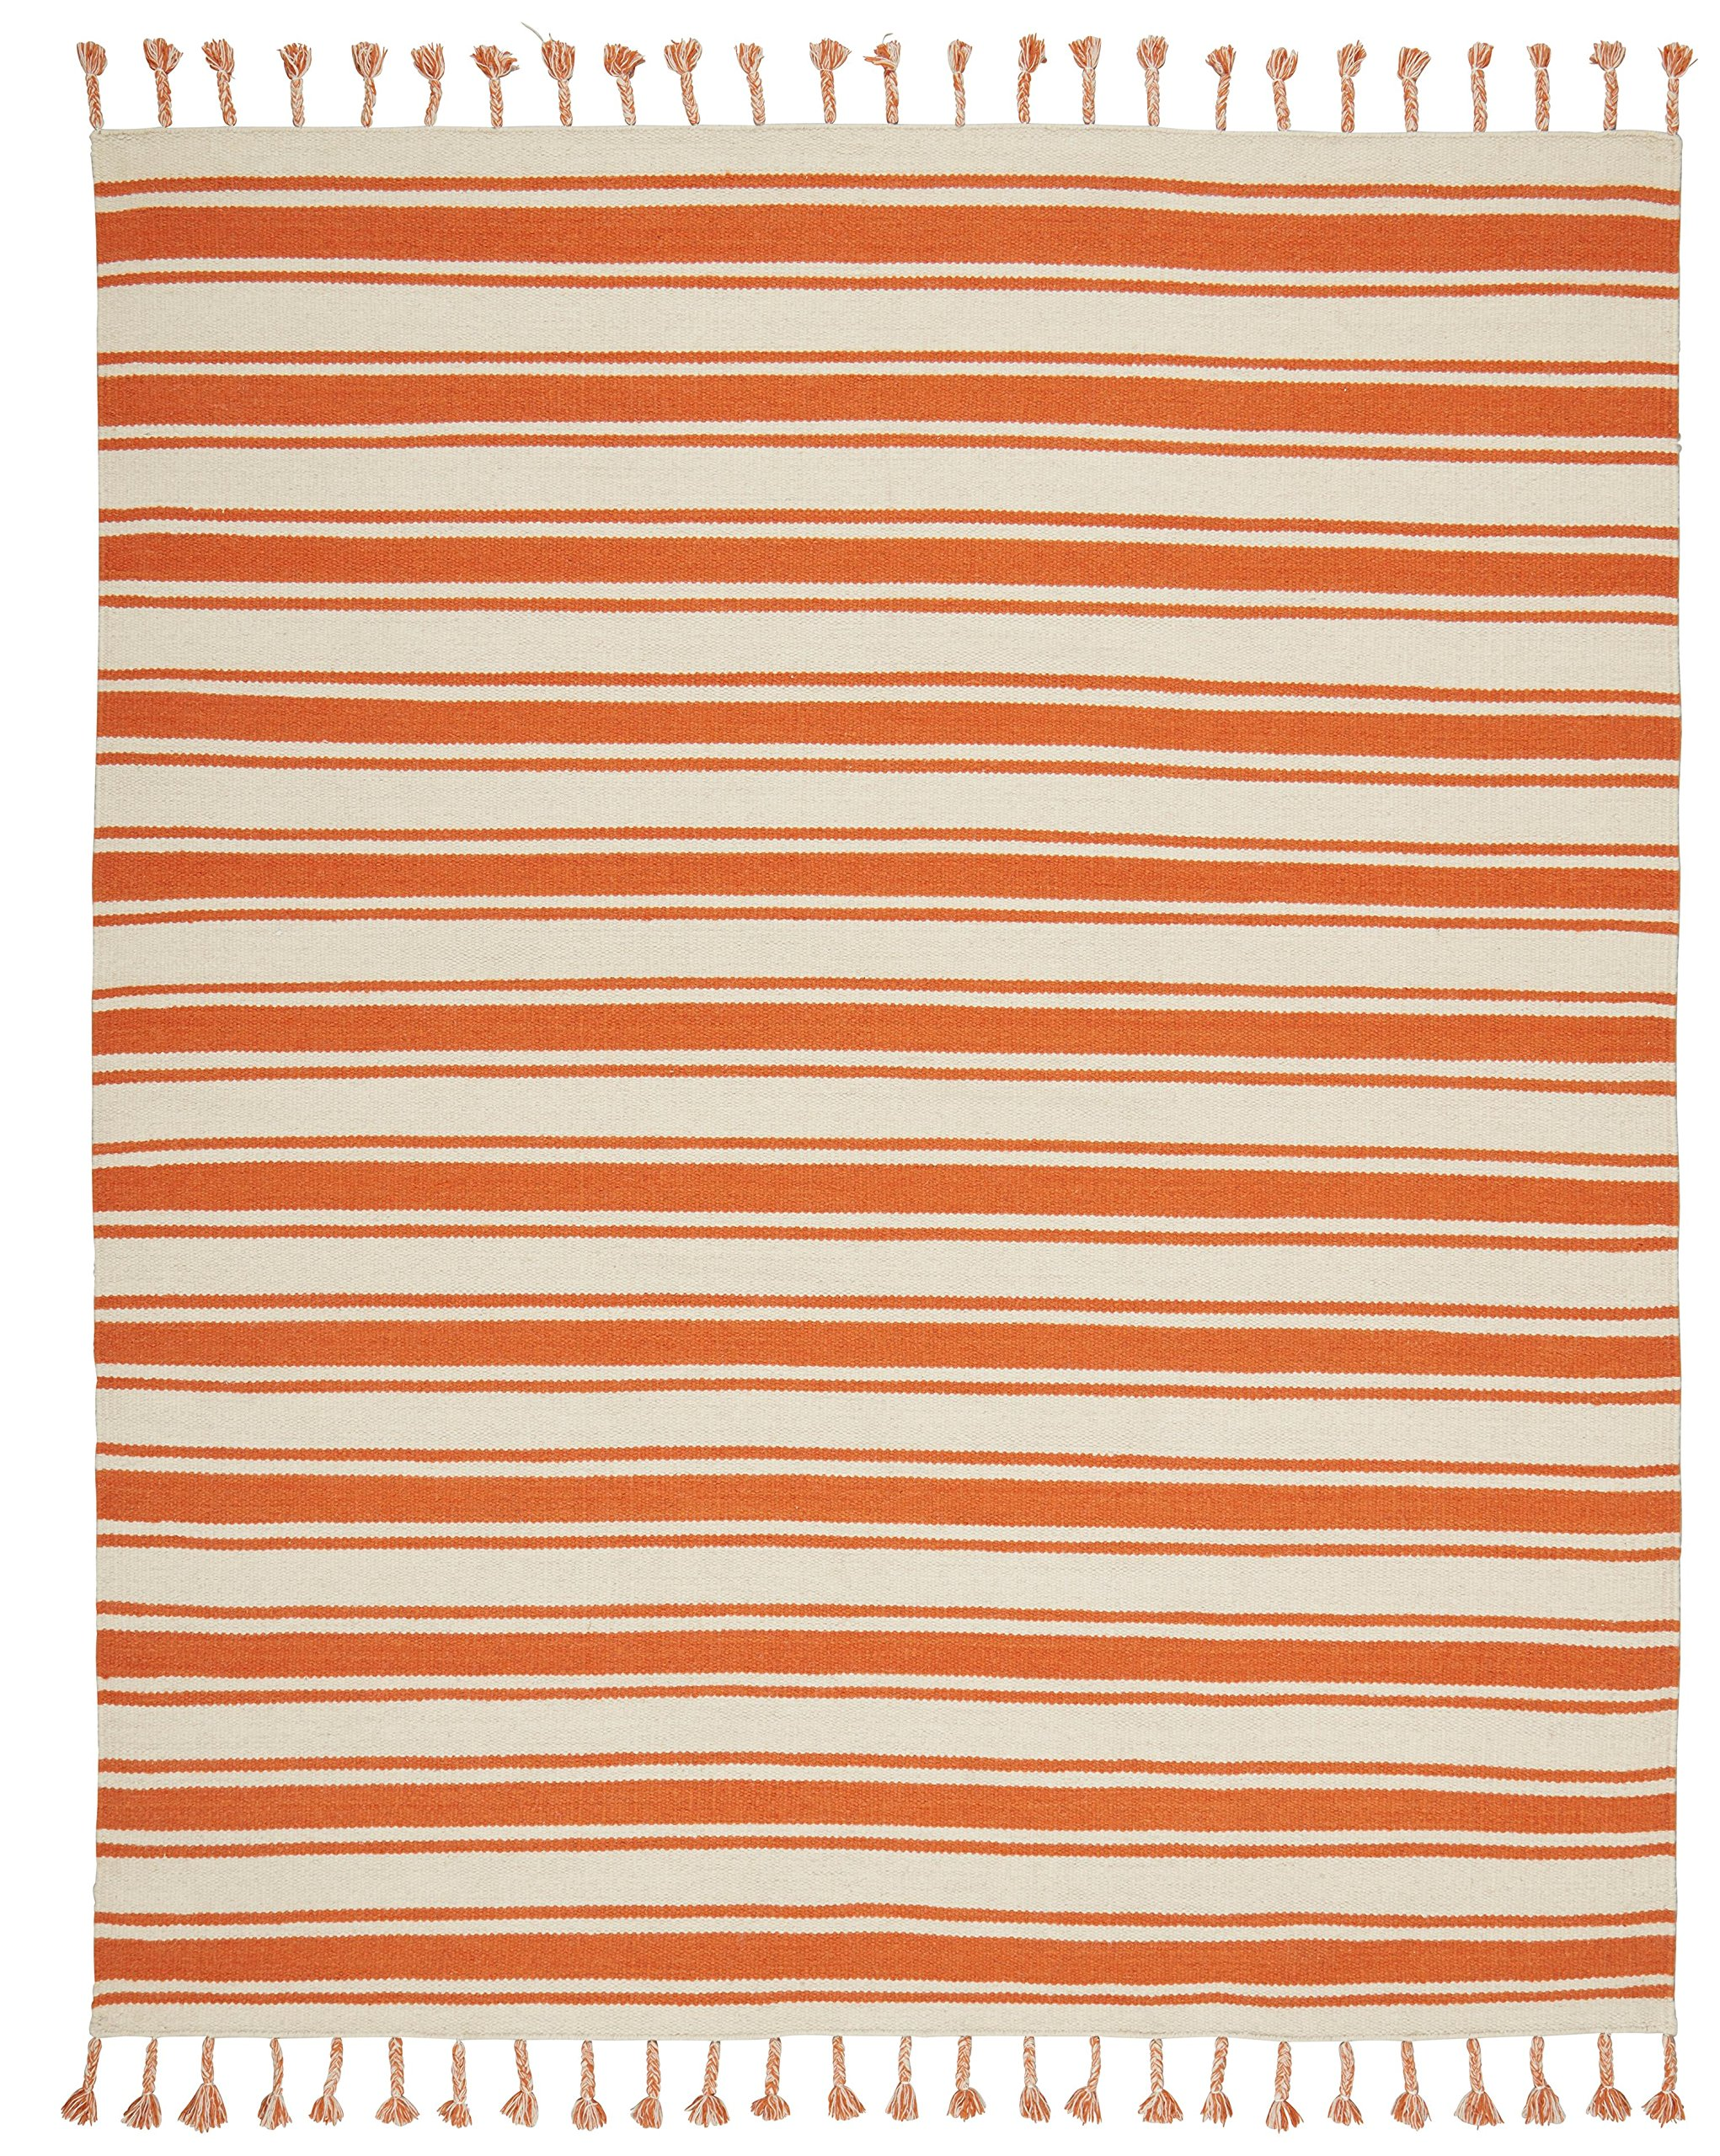 Stone & Beam Los Altos Striped Dhurrie Area Rug, 5' x 7'6, Orange and Ivory by Stone & Beam